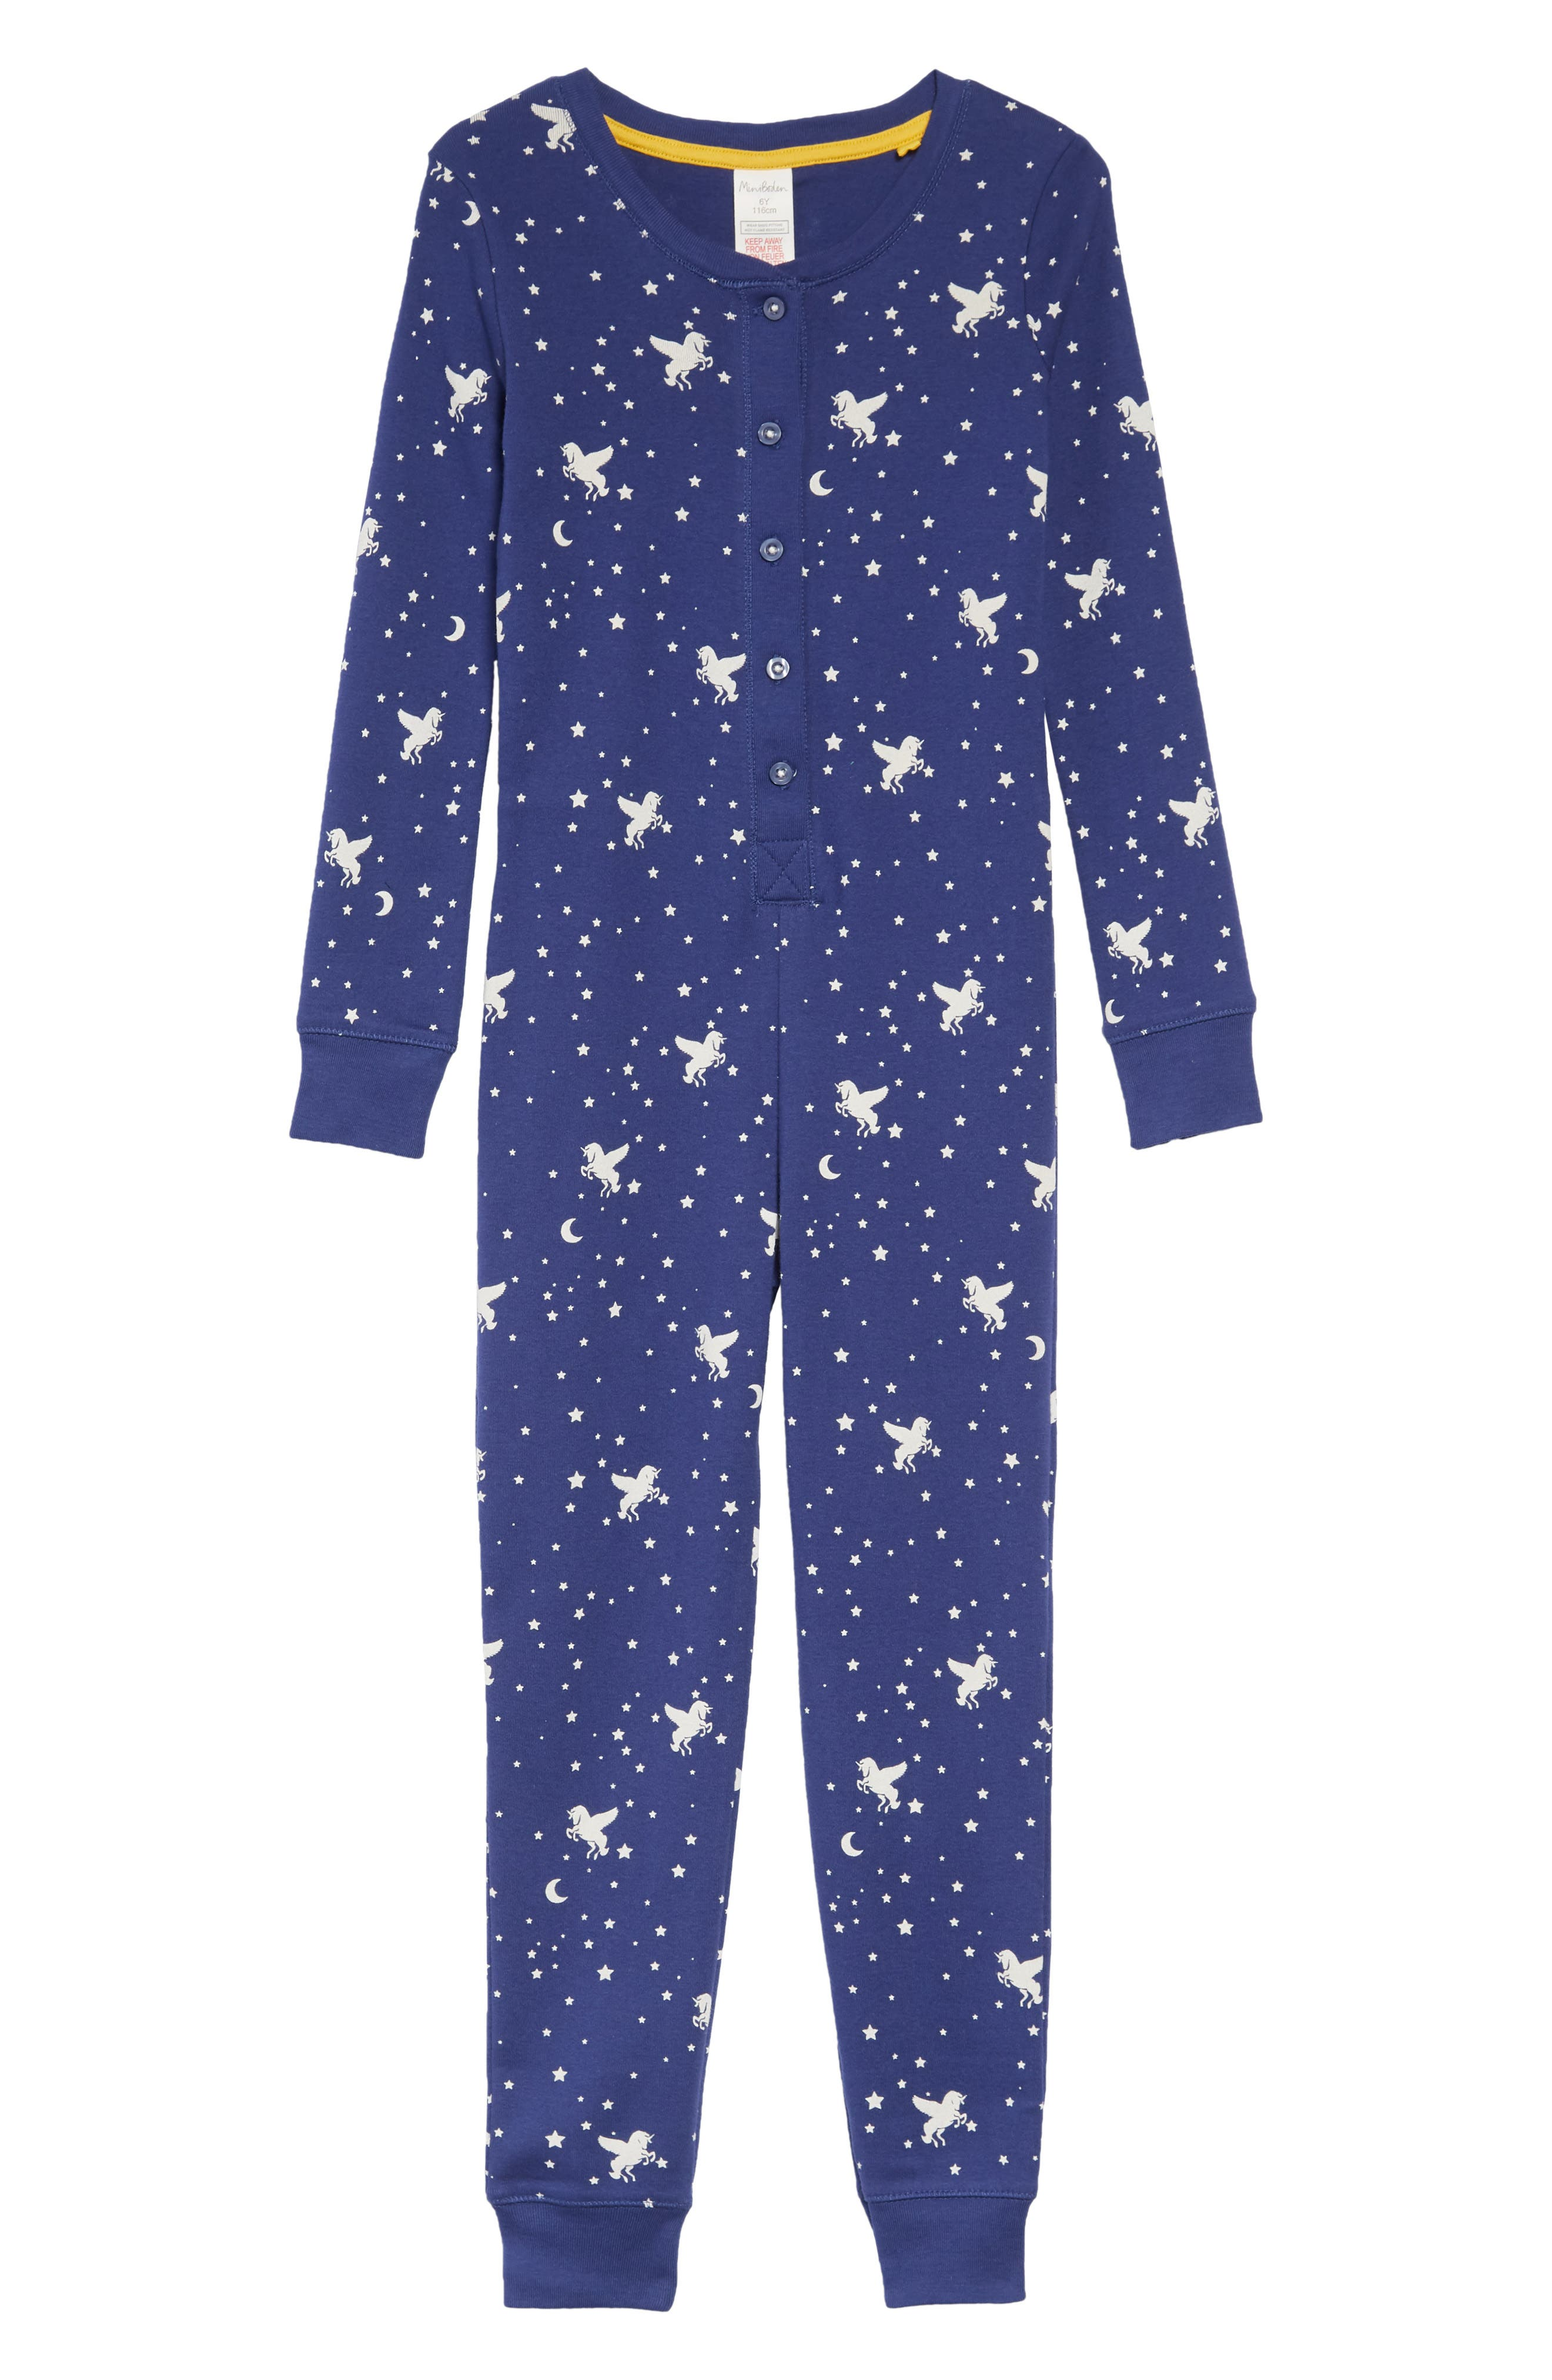 Fitted Cosy All in One Pajamas,                             Main thumbnail 1, color,                             DBL STARBOARD BLUE UNICORN SKY